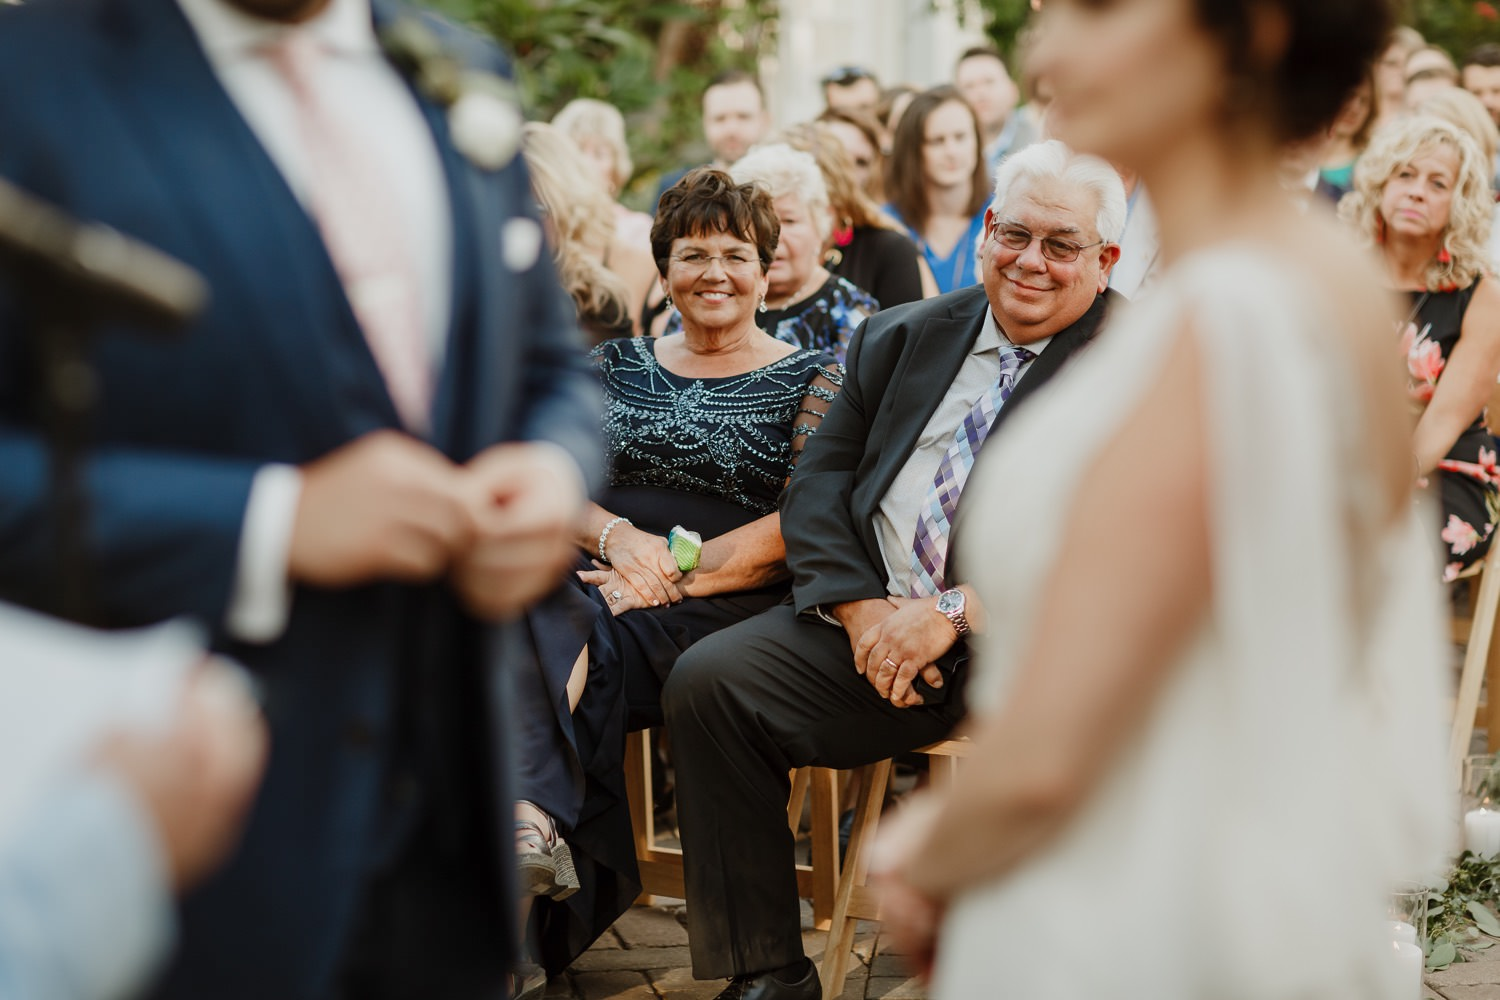 Picture of the parents of the groom taken during the exchange of the rings at Garfield Park Conservatory wedding